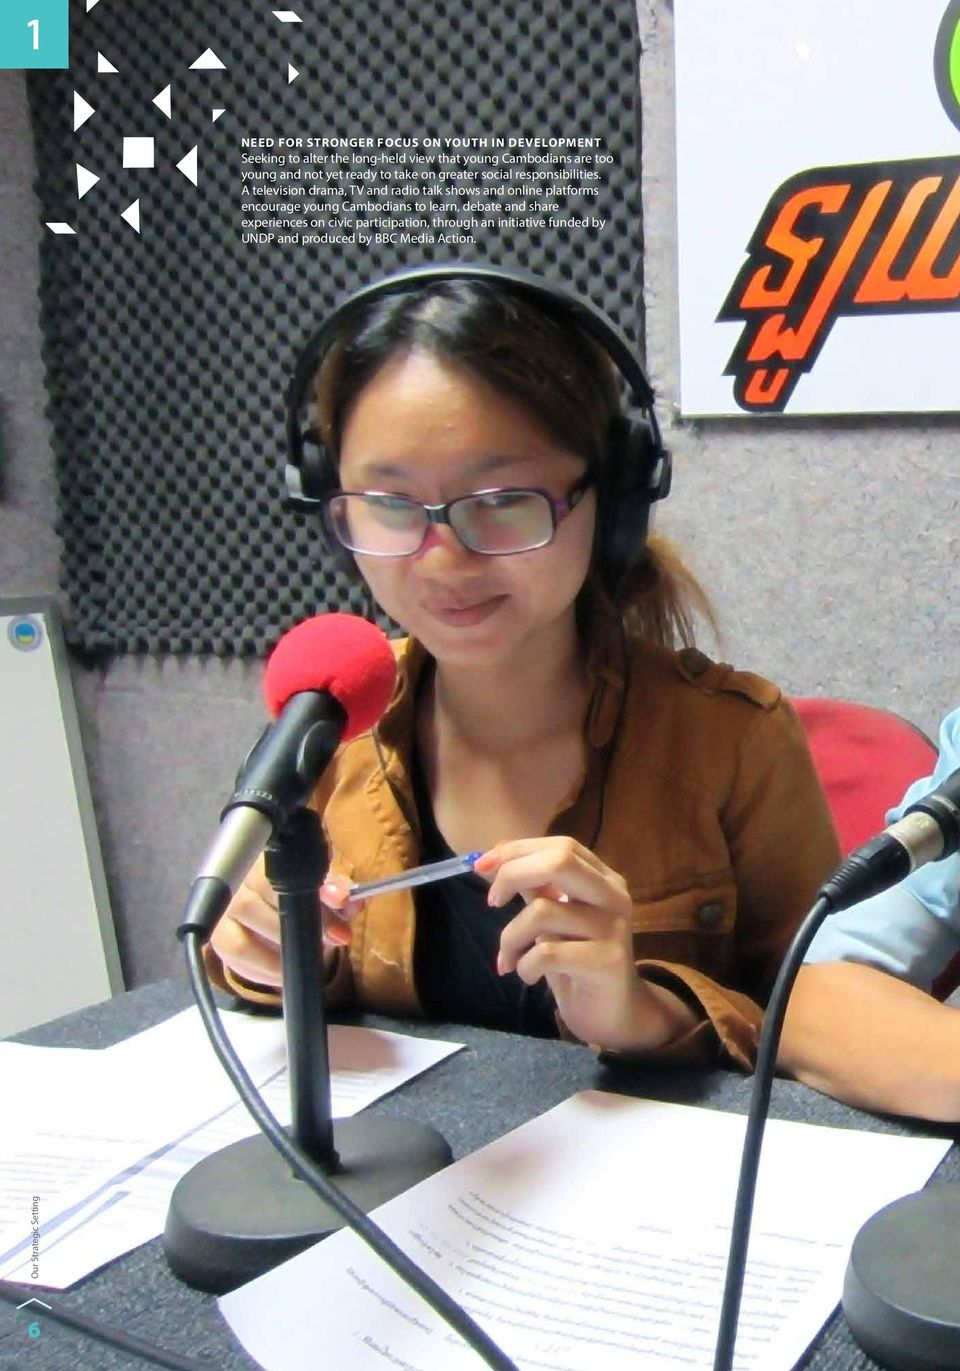 A television drama, TV and radio talk shows and online platforms encourage young Cambodians to learn, debate